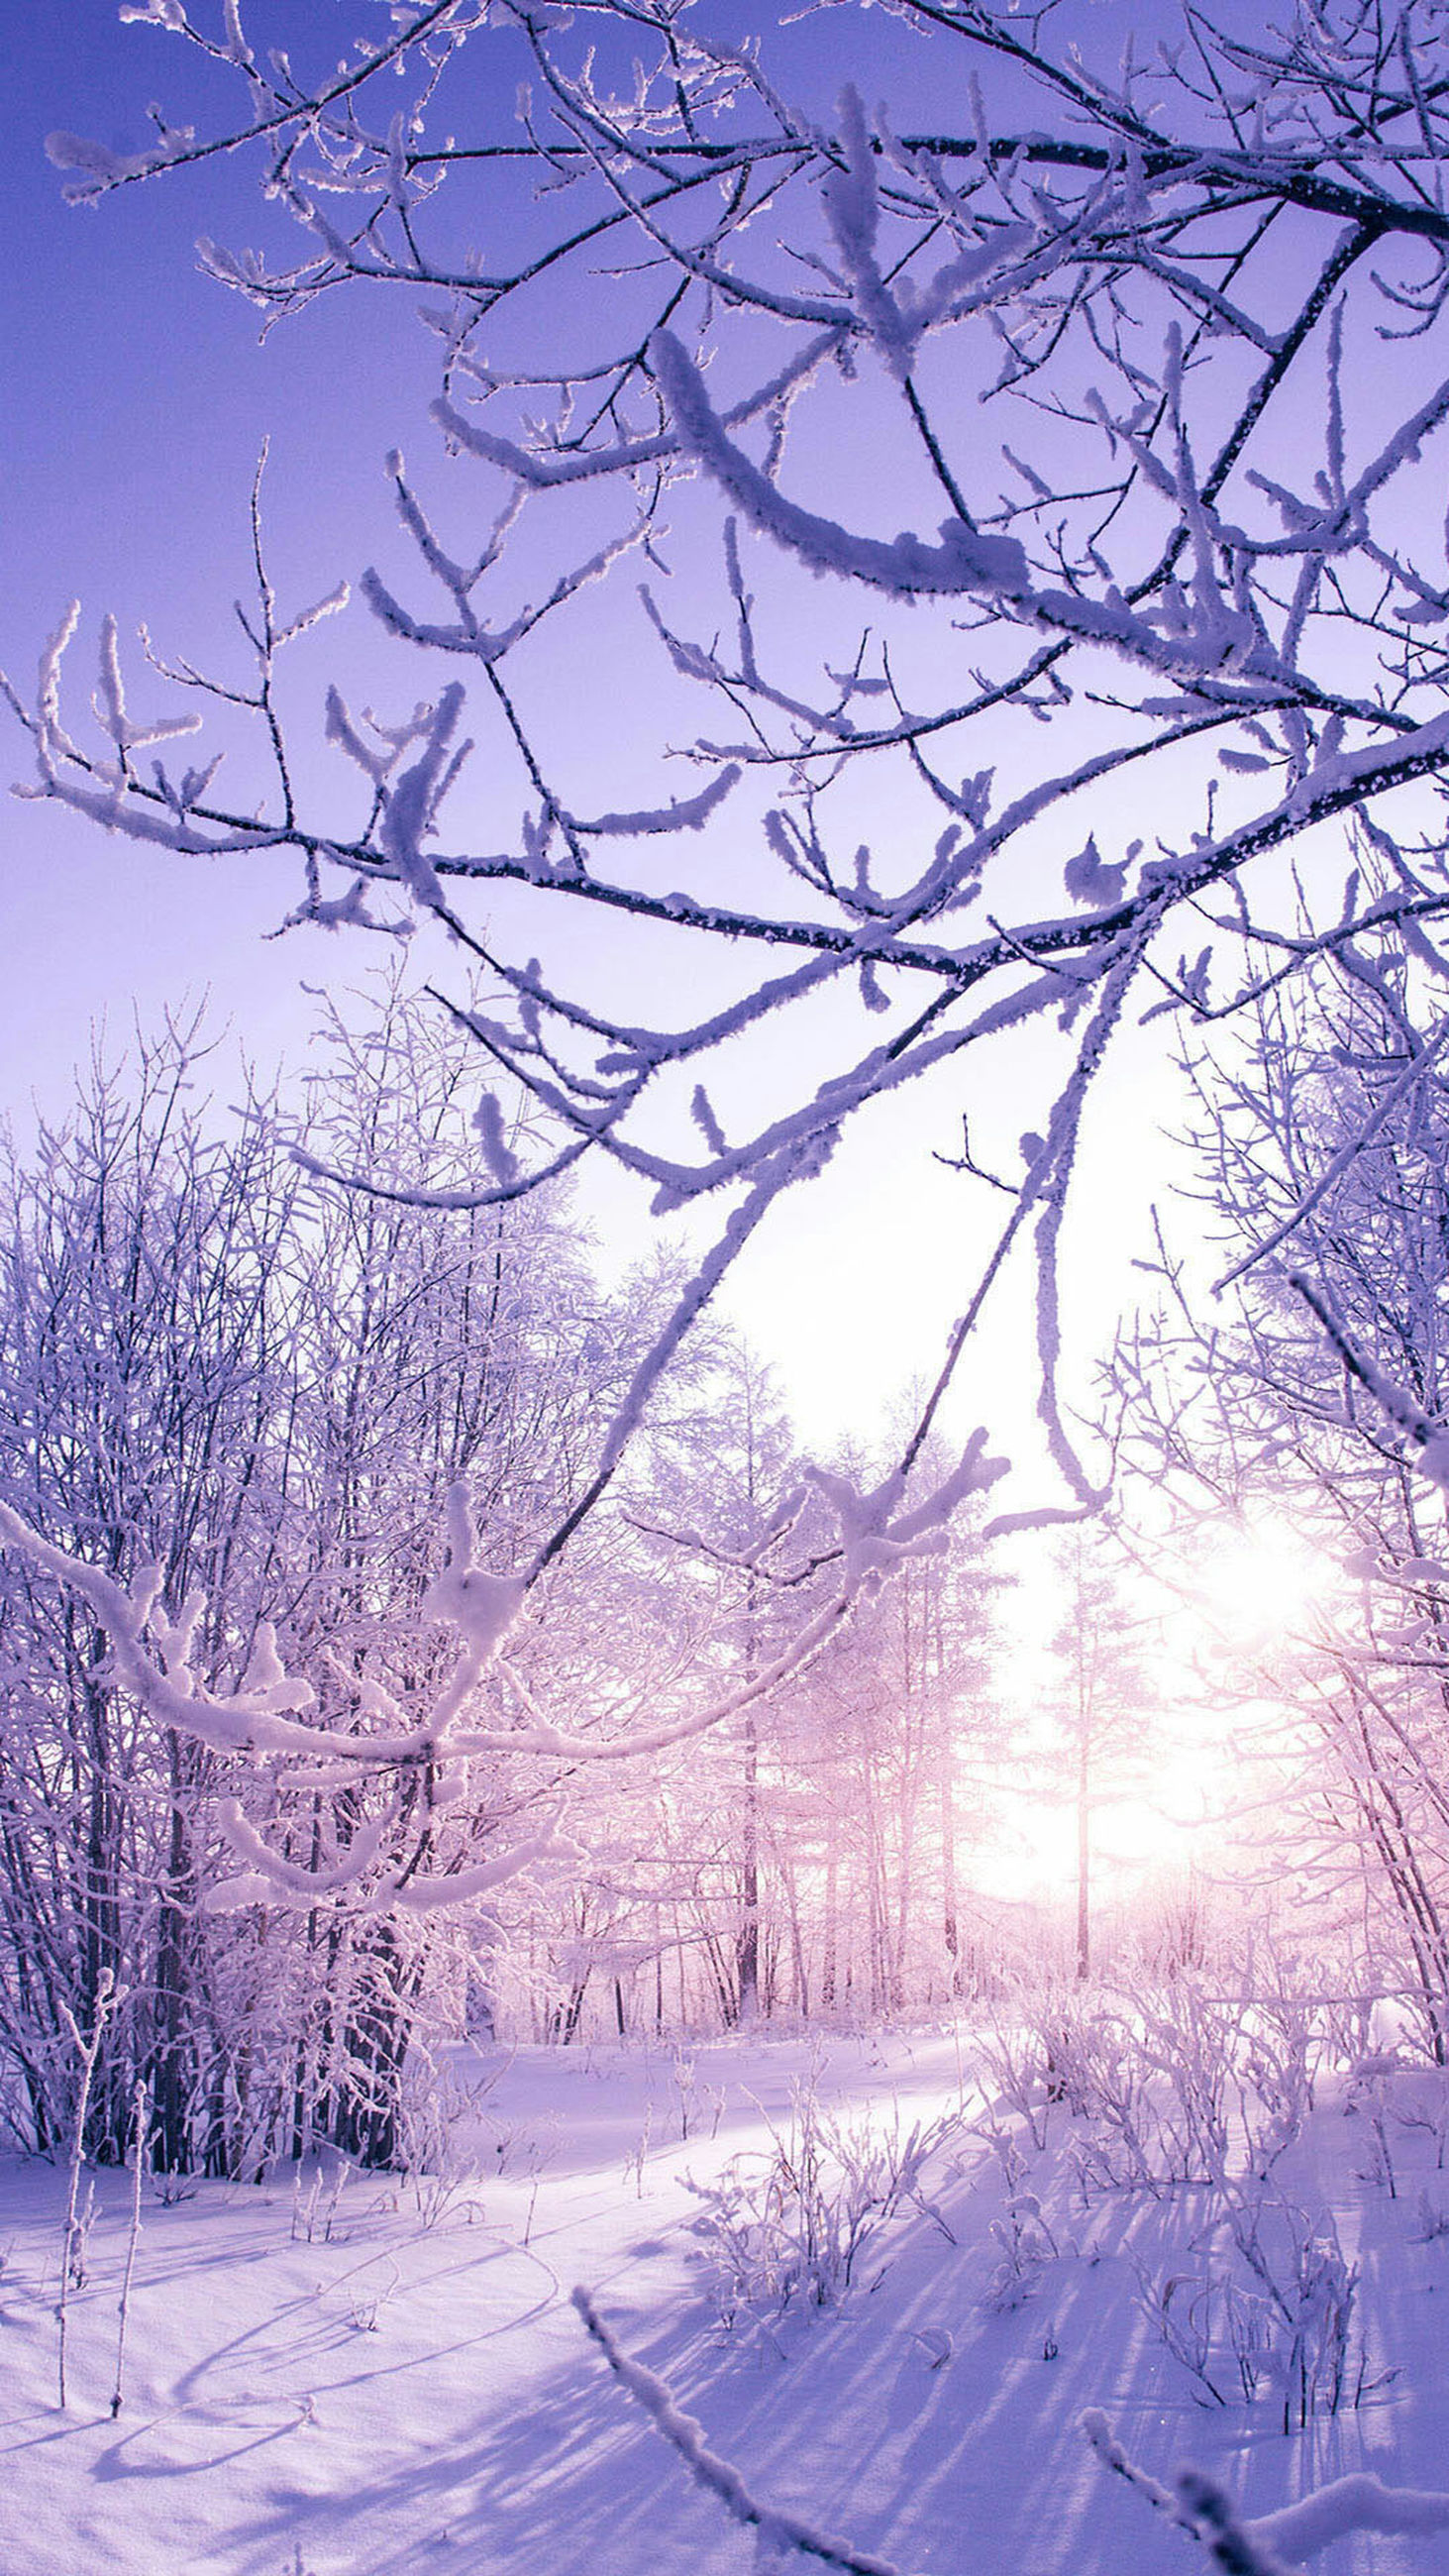 tree, snow, cold temperature, winter, nature, bare tree, no people, branch, sky, outdoors, tranquility, beauty in nature, growth, scenics, tranquil scene, day